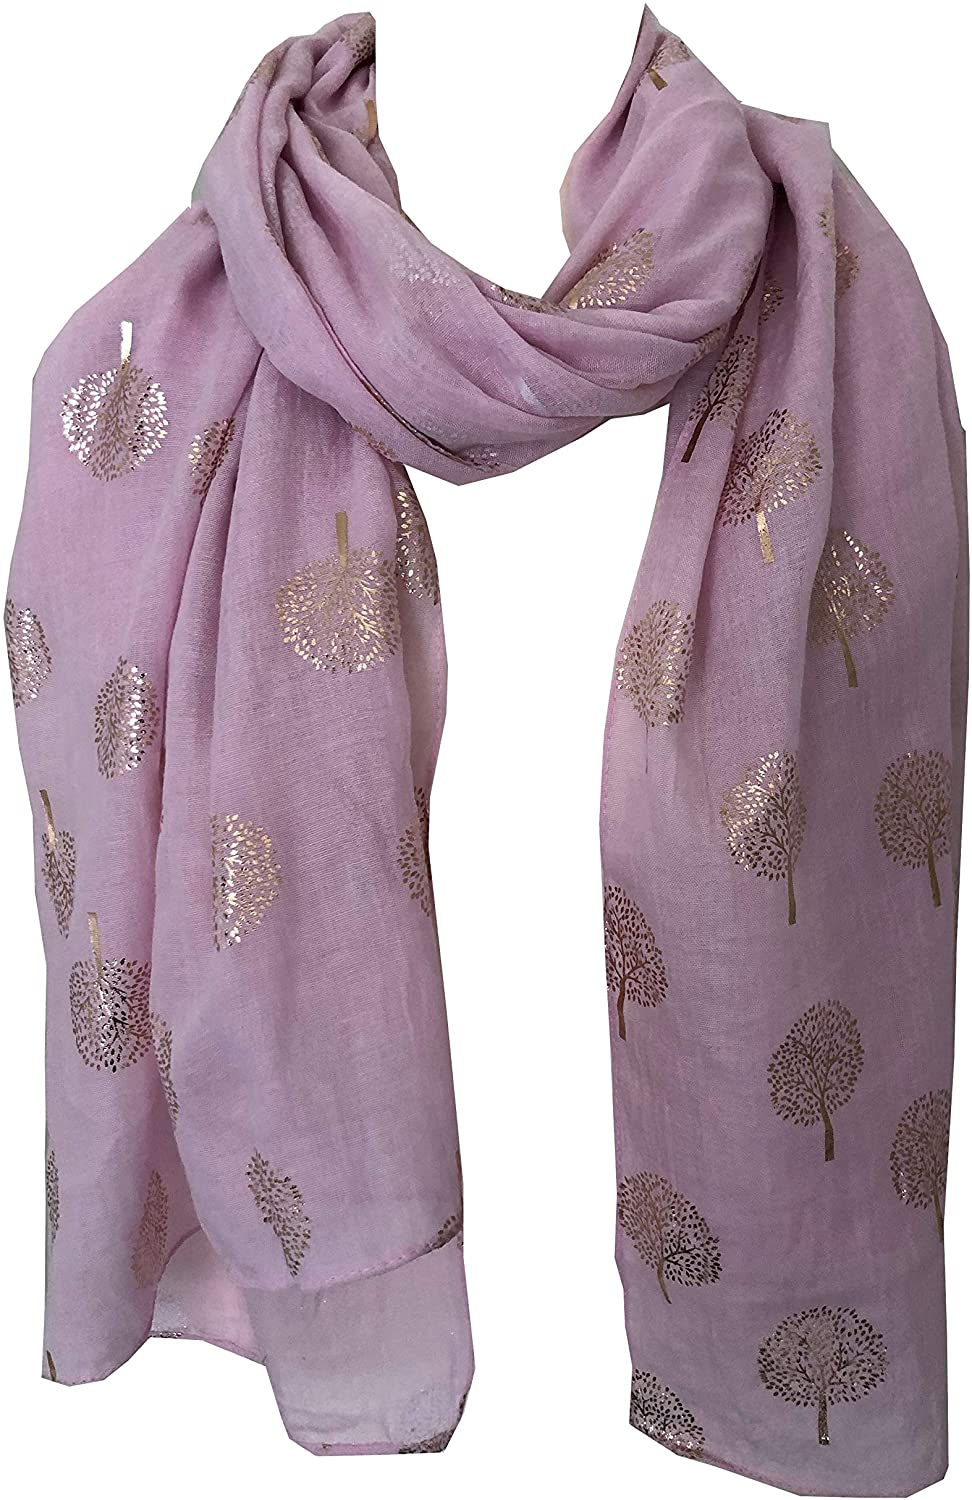 Pamper Yourself Now Pink with Gold Foiled Mulberry Tree Design Ladies Scarf/wrap. Great Present for Mum, Sister, Girlfriend or Wife.